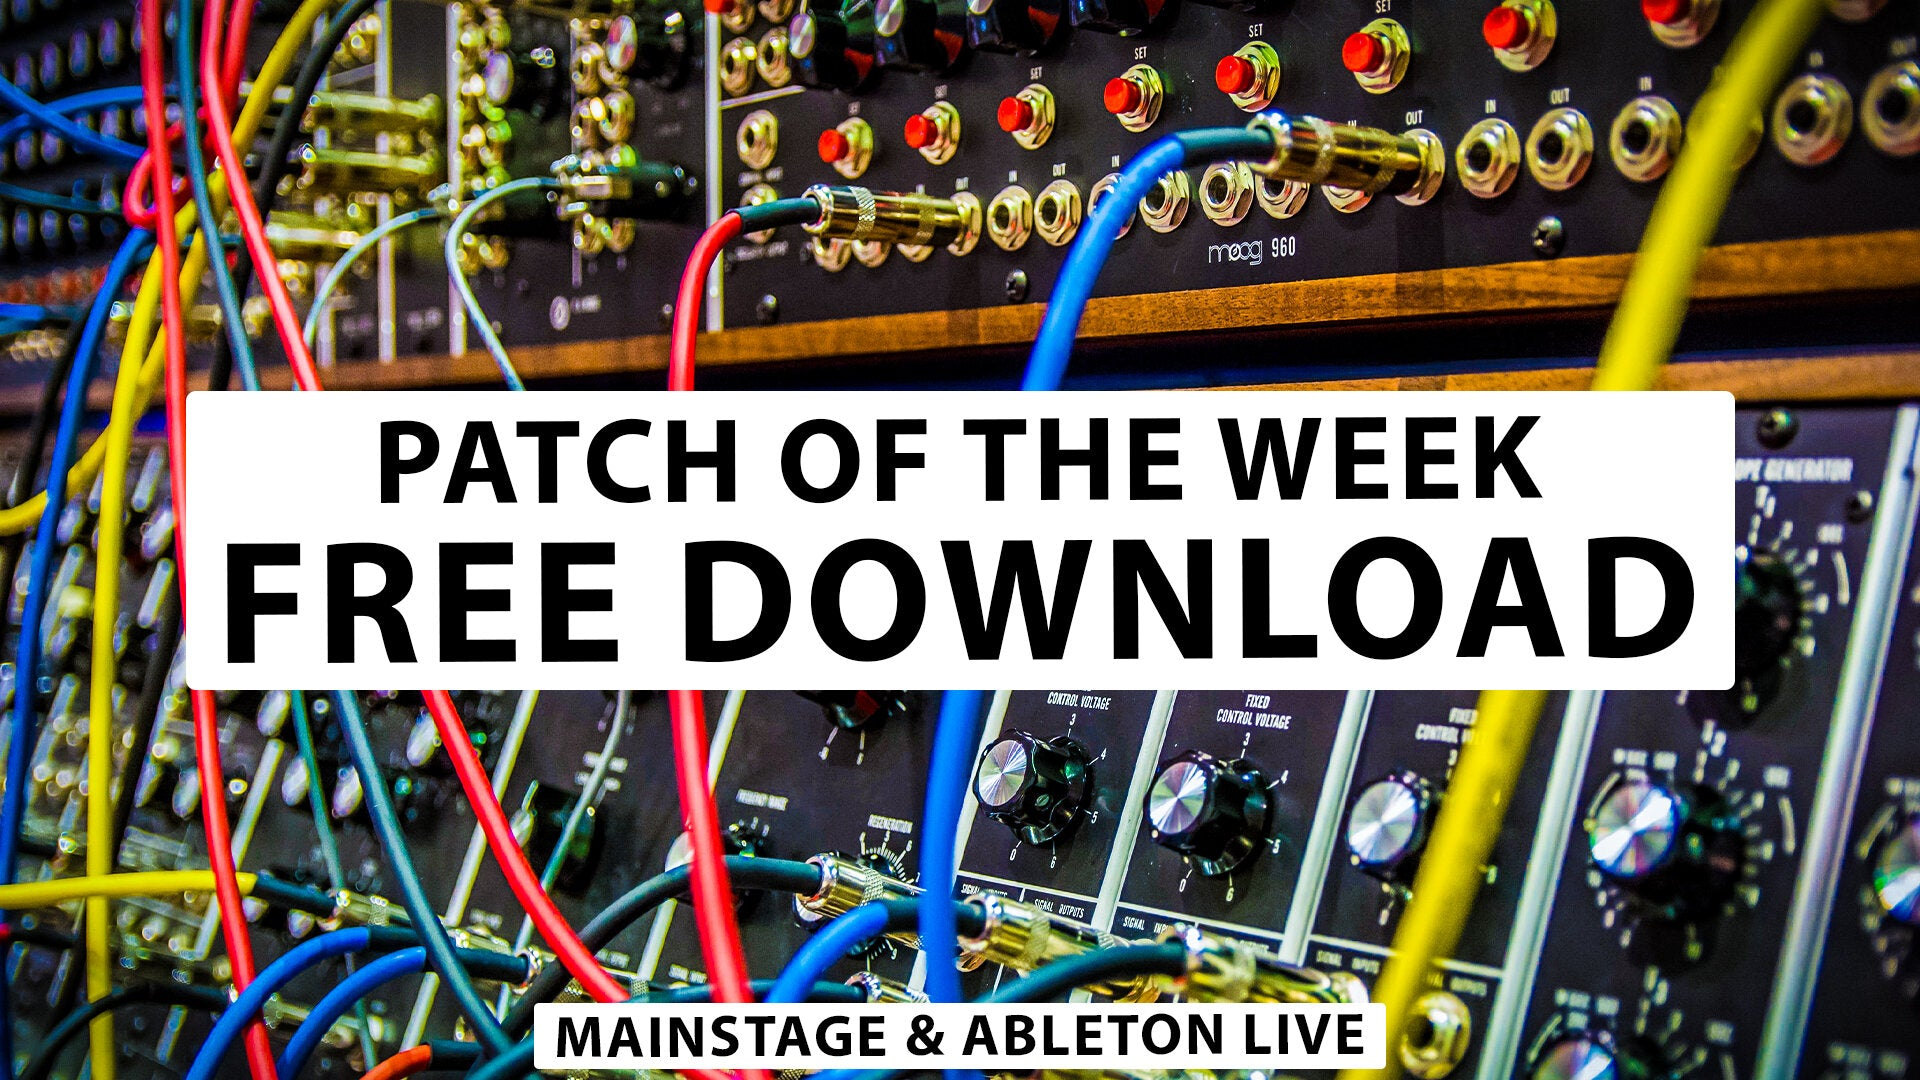 free-patch-of-the-week-mainstage-ableton-live-rack-stock-synth-pad-lead-arp-organ-bass-bell-soundbed-swell.jpg